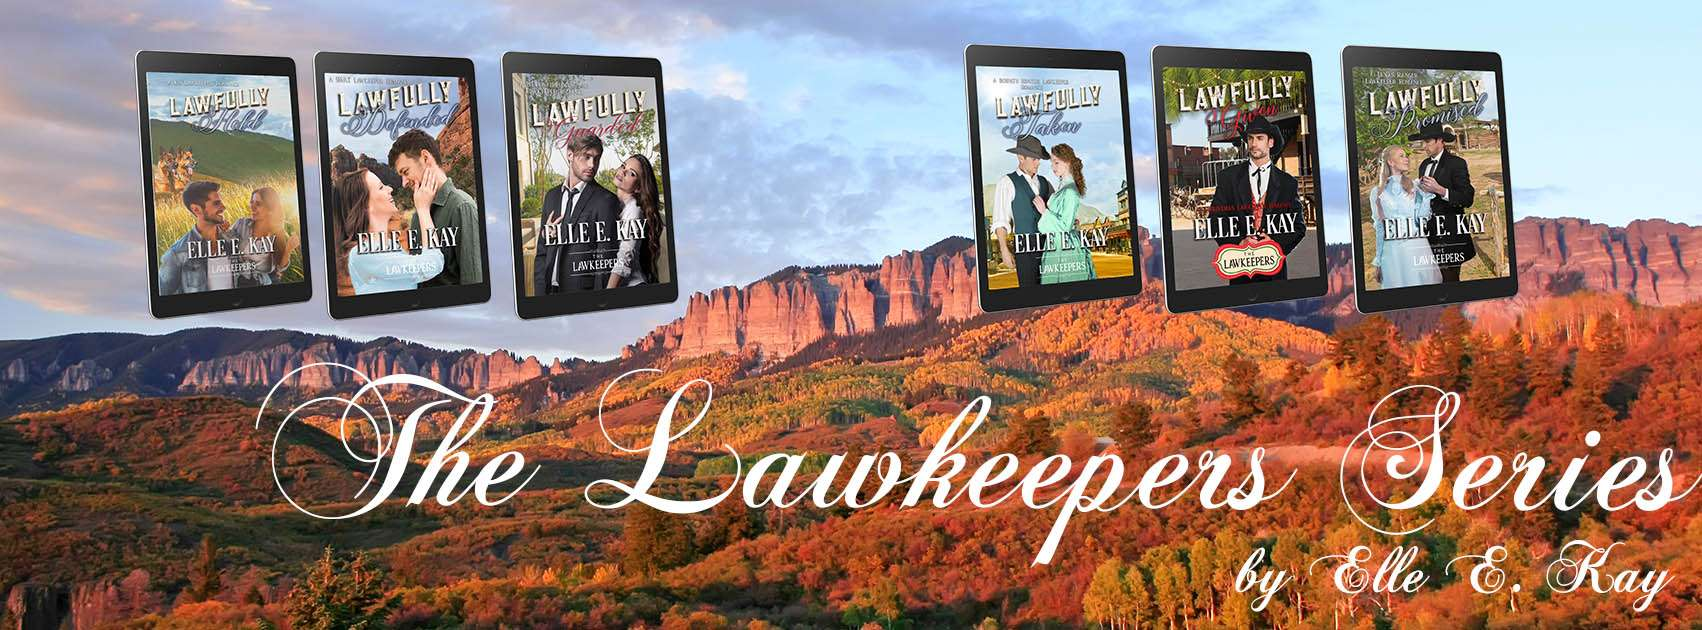 The Lawkeepers Series